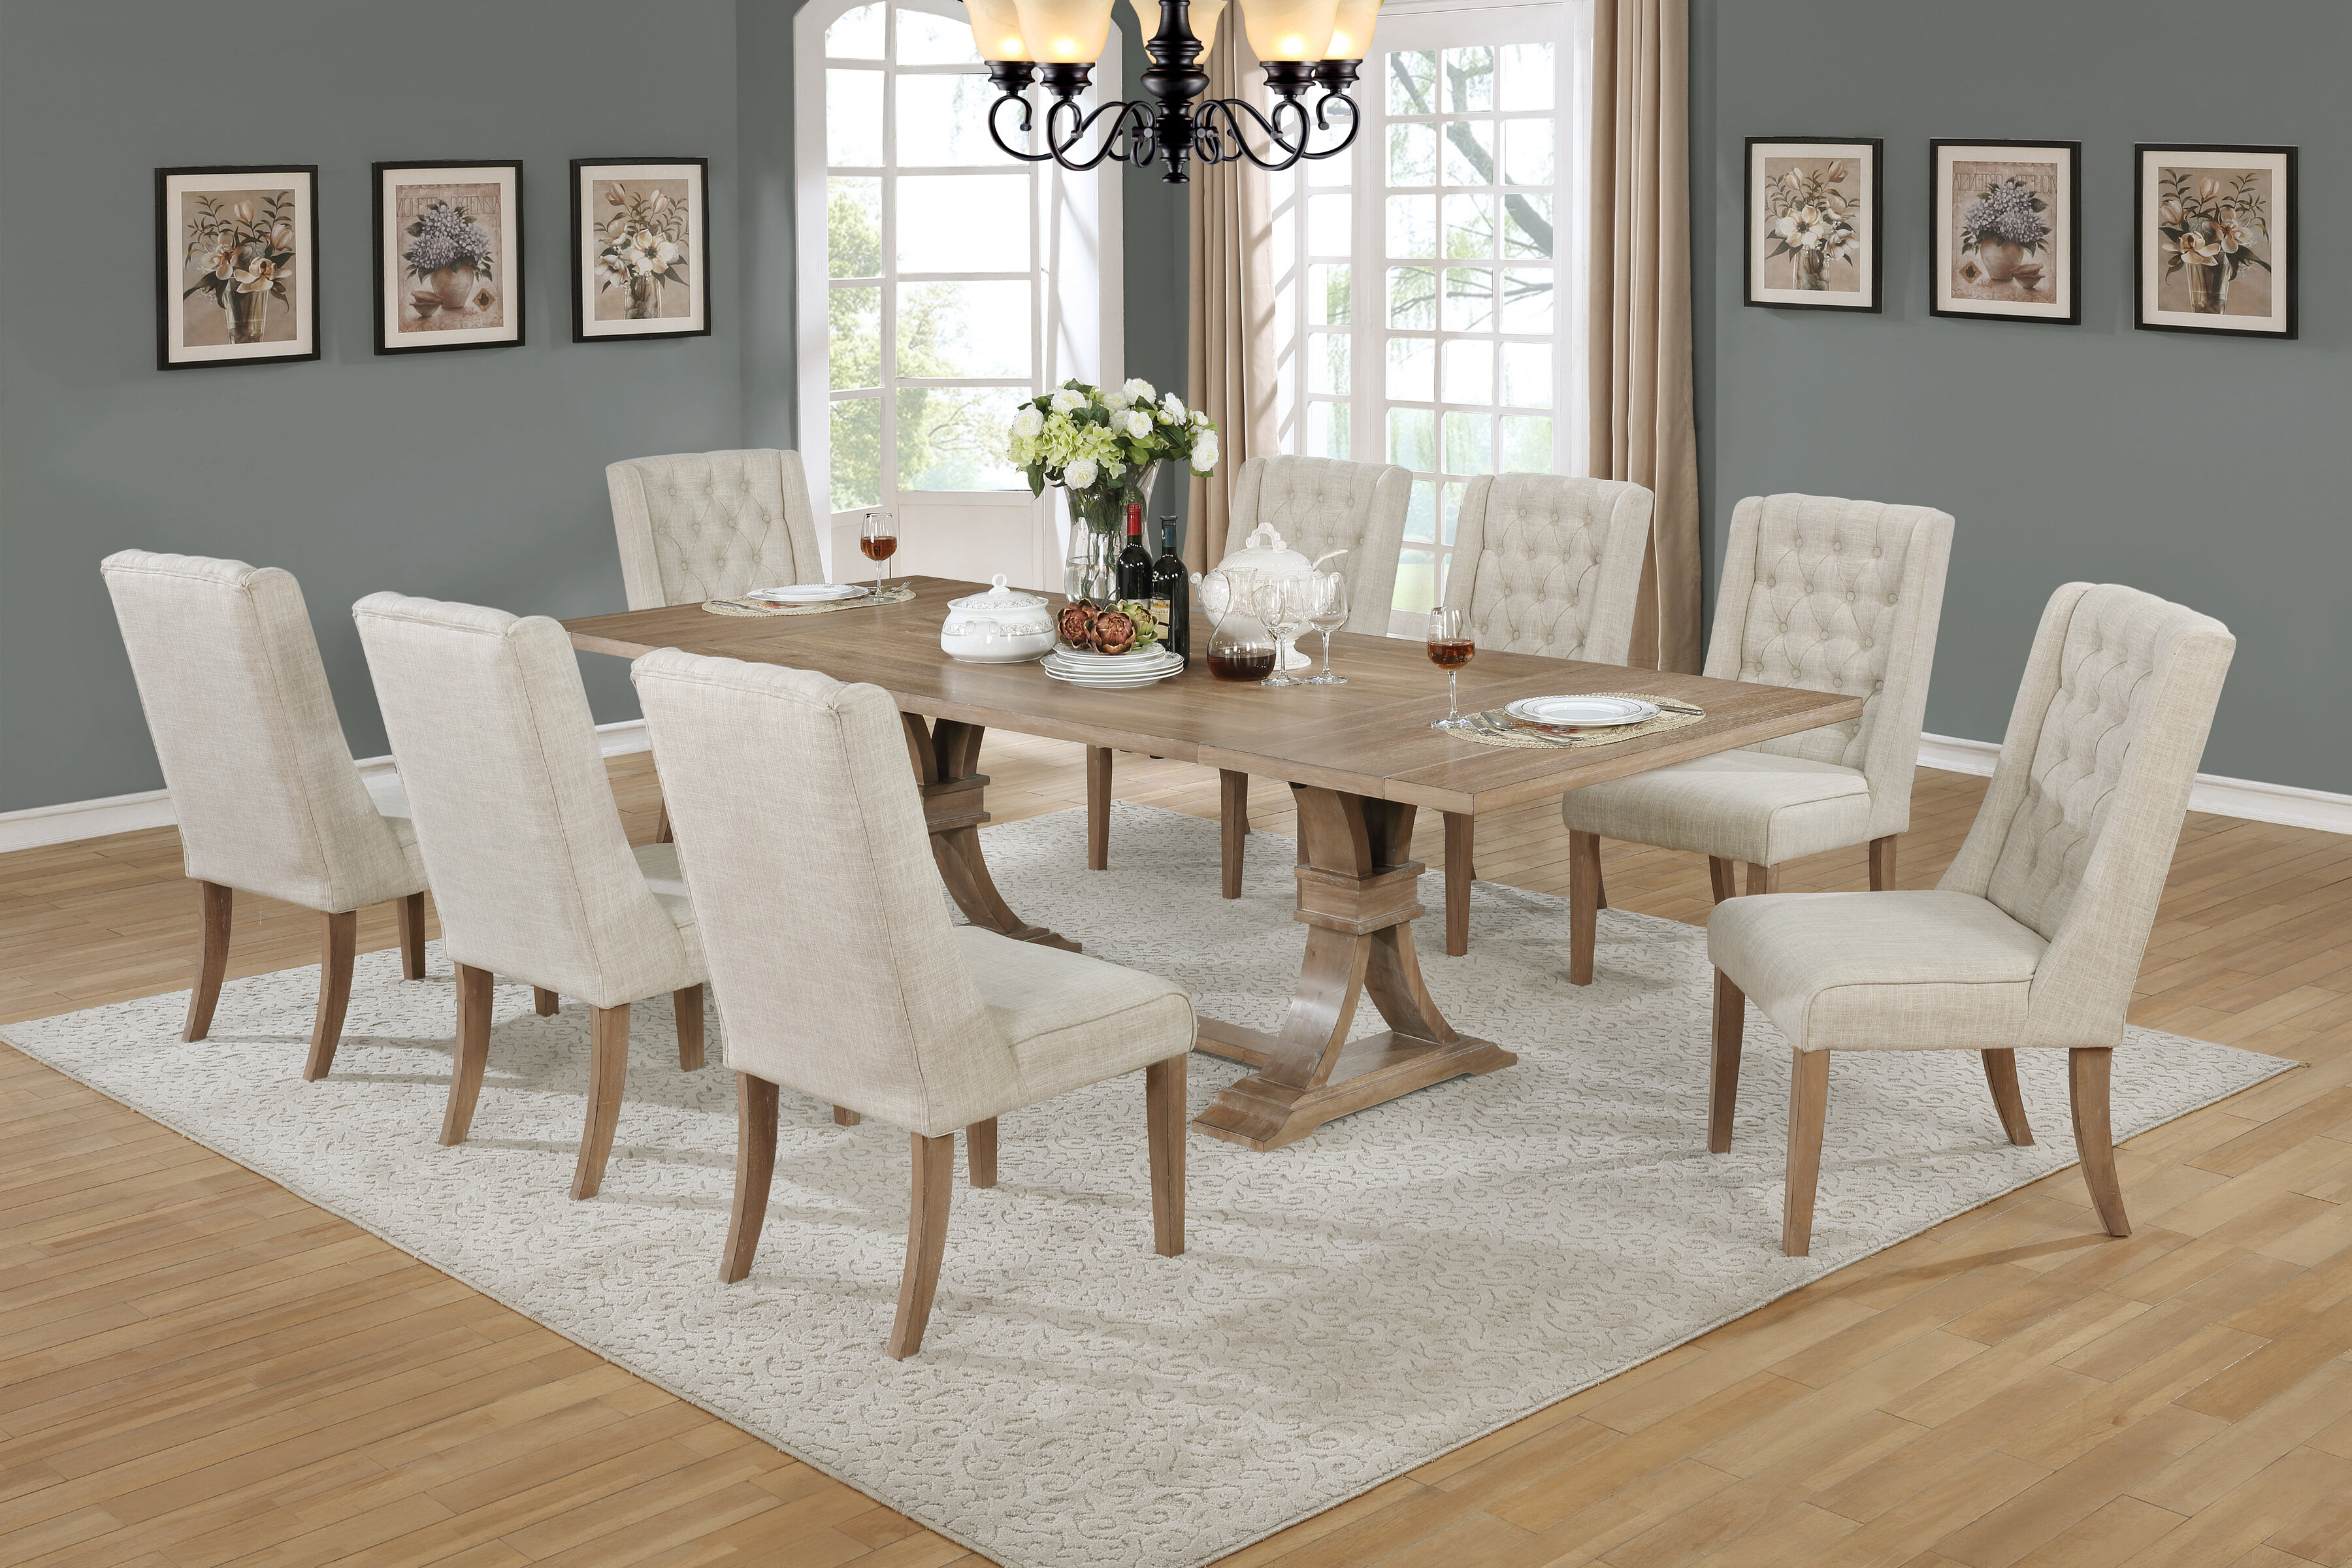 Dions 4 Piece Dining Set